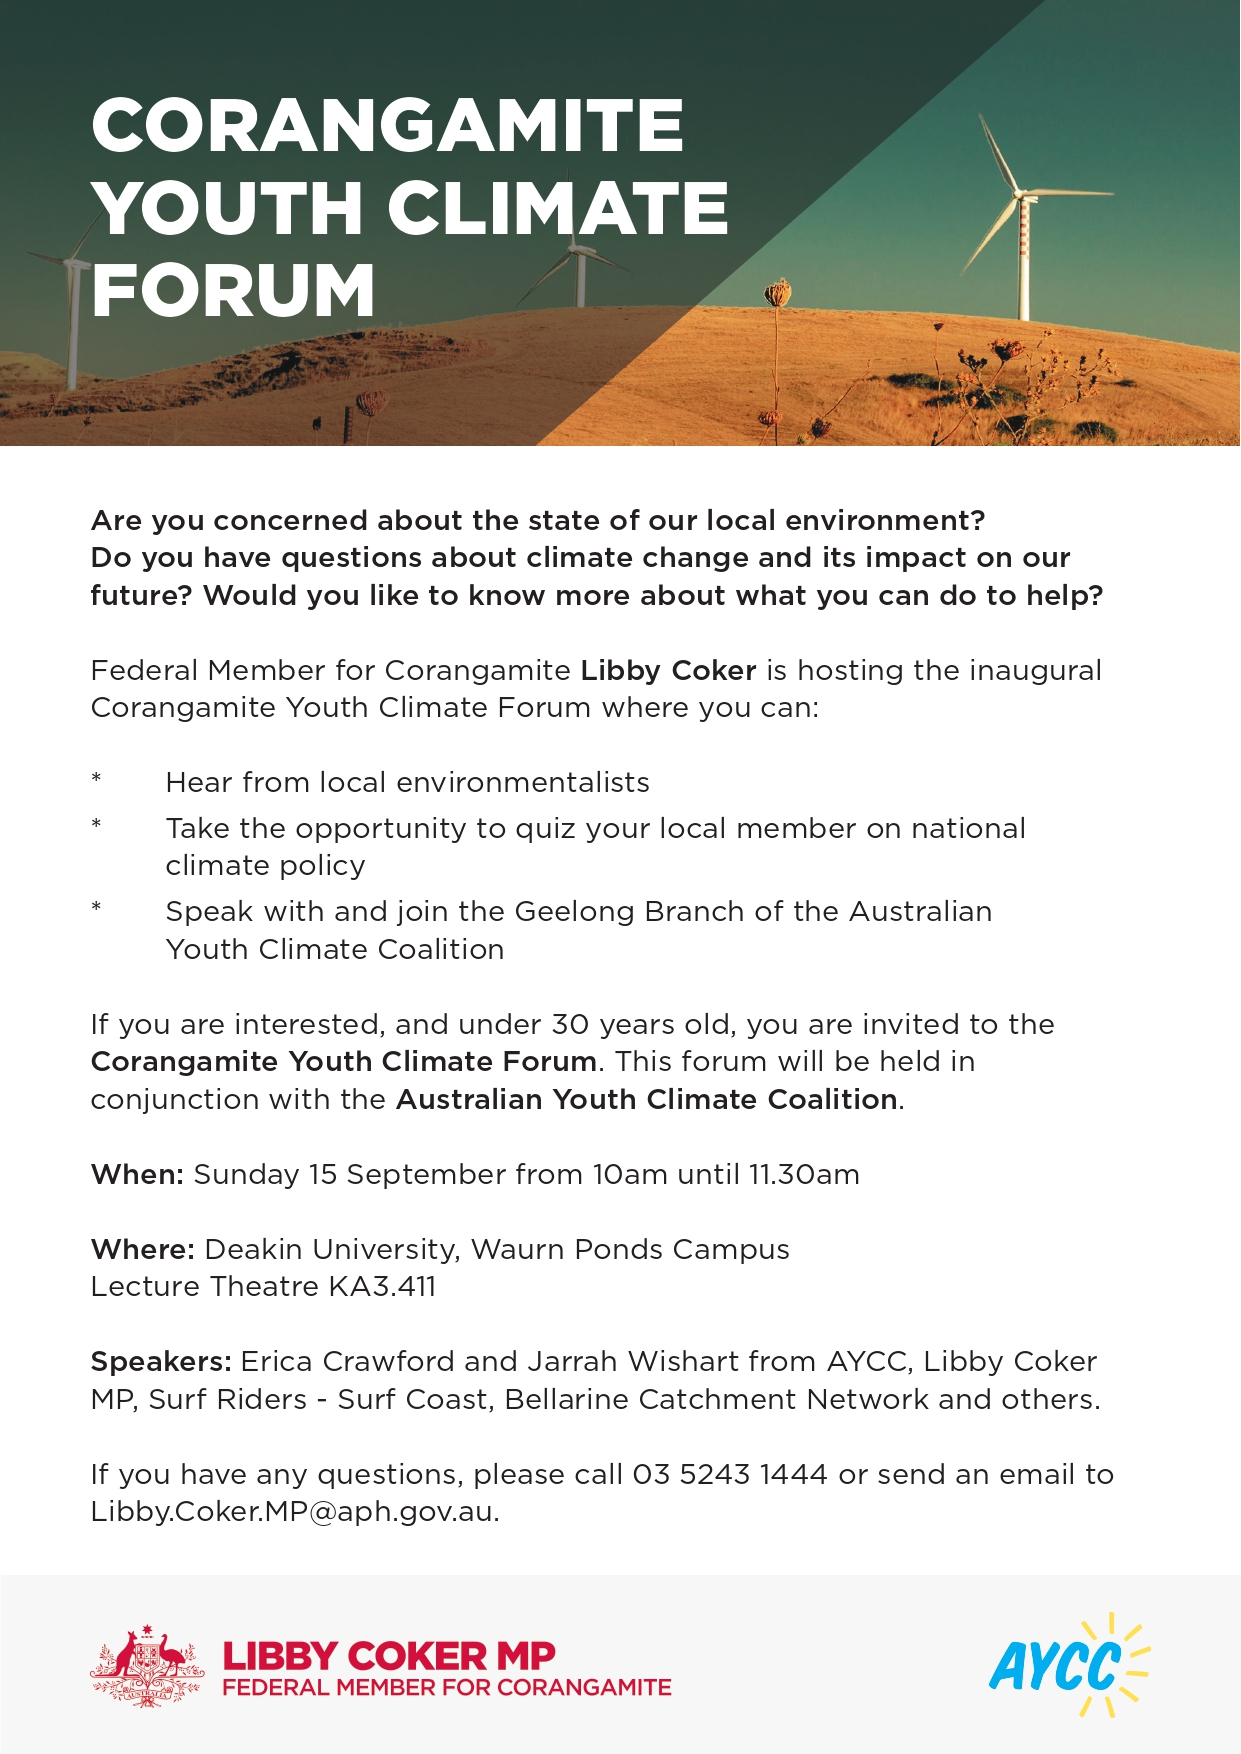 Flyer for Youth Climate Forum_page-0001.jpg